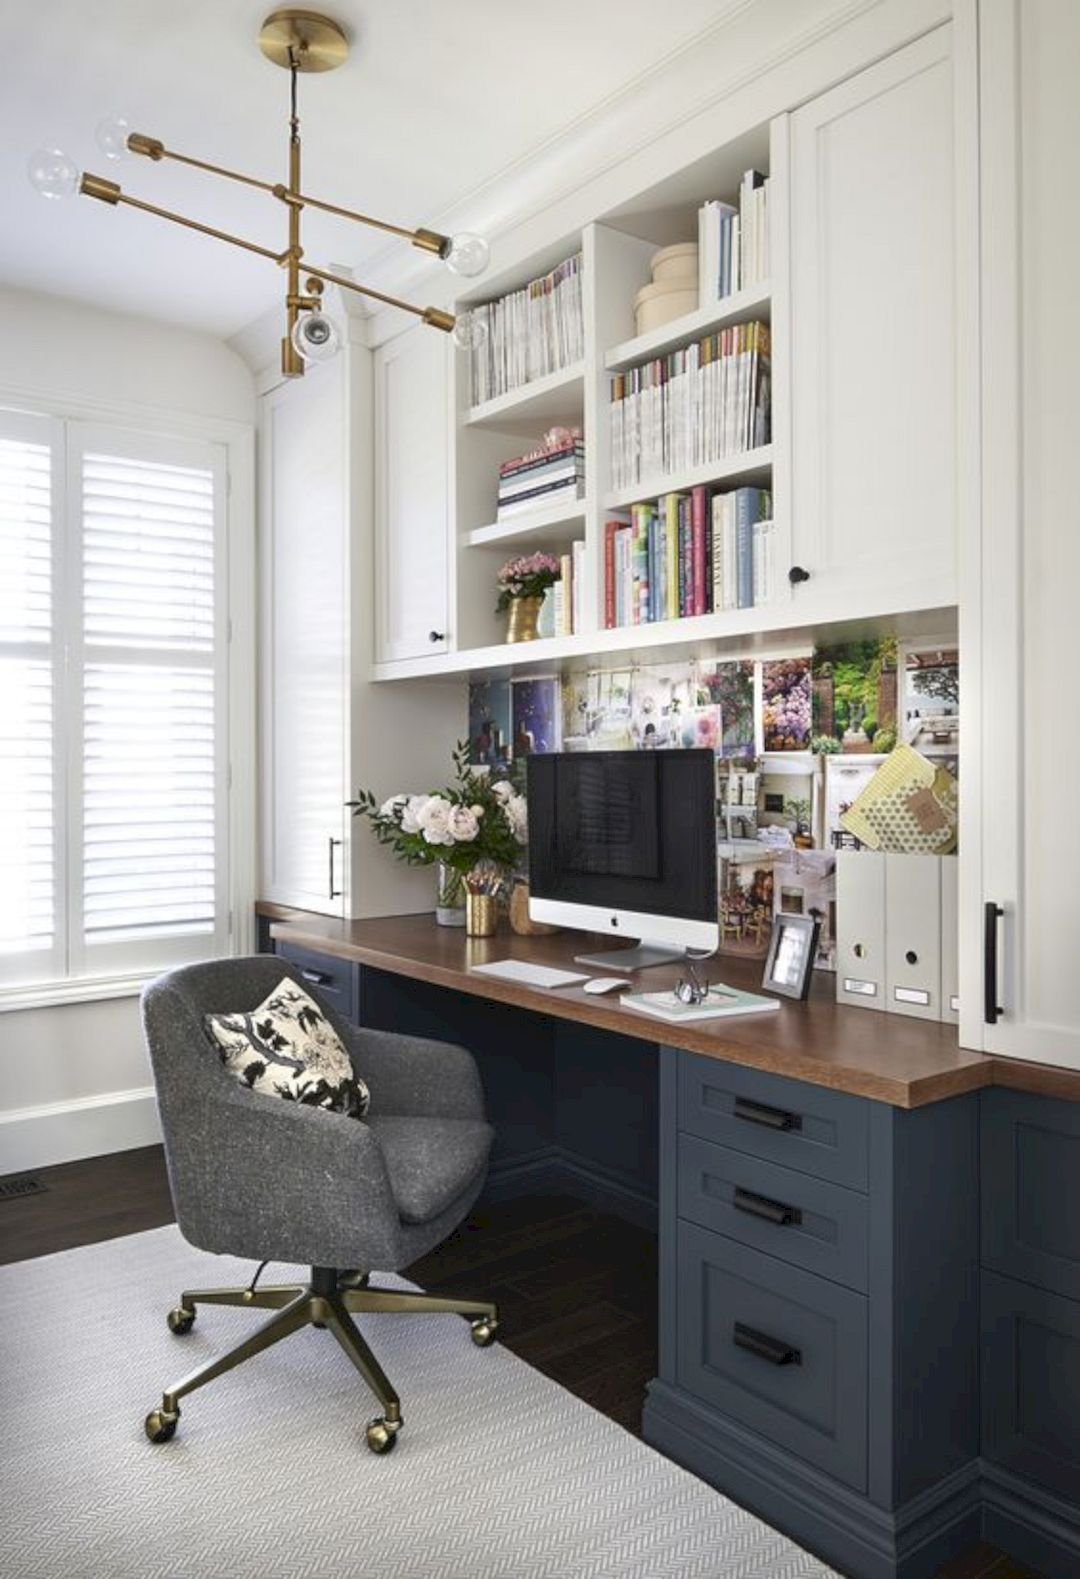 10 Home Office Ideas That Will Almost Make You Want To Become A Workaholic Home Office Space Home Office Furniture Home Office Design